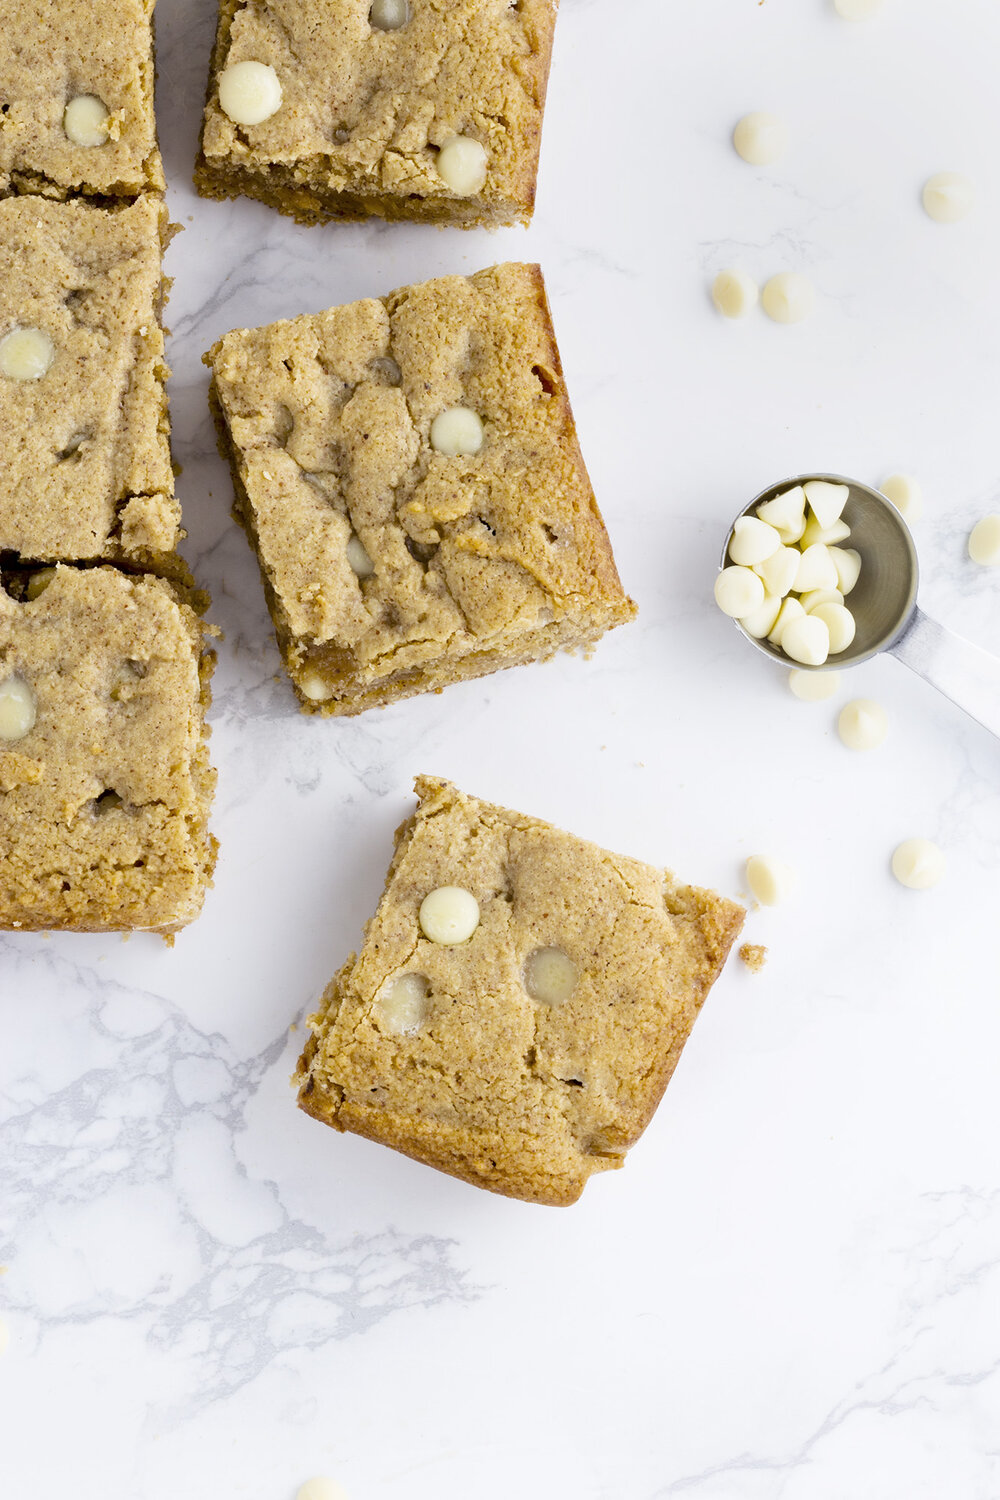 Bake Believe: Low-Carb White Chocolate Chip Blondies